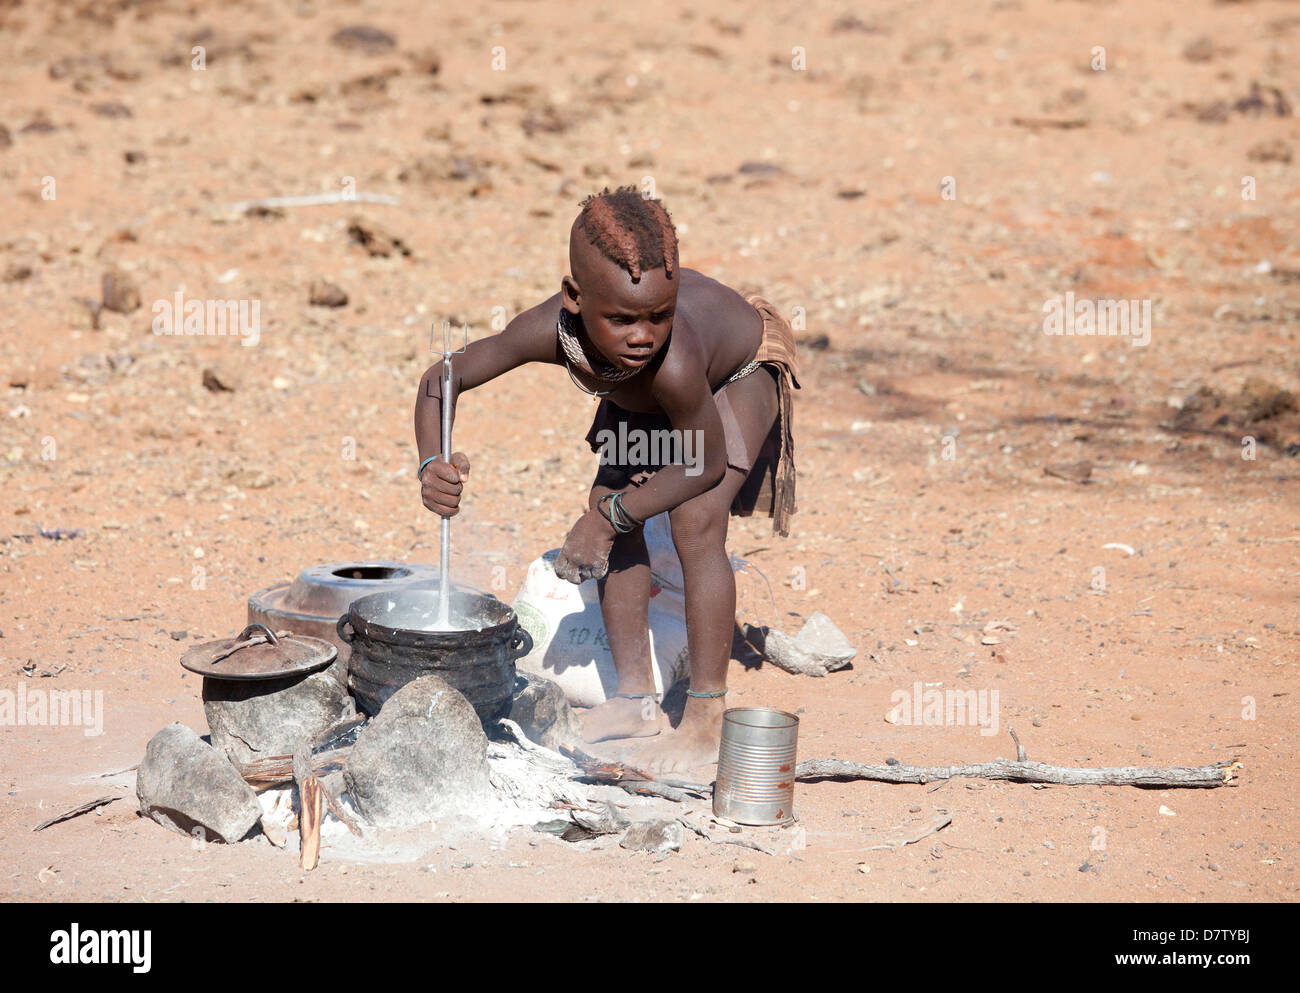 Young Himba boy cooking food on open fire in his village, Kunene Region (formerly Kaokoland) in the far north of - Stock Image